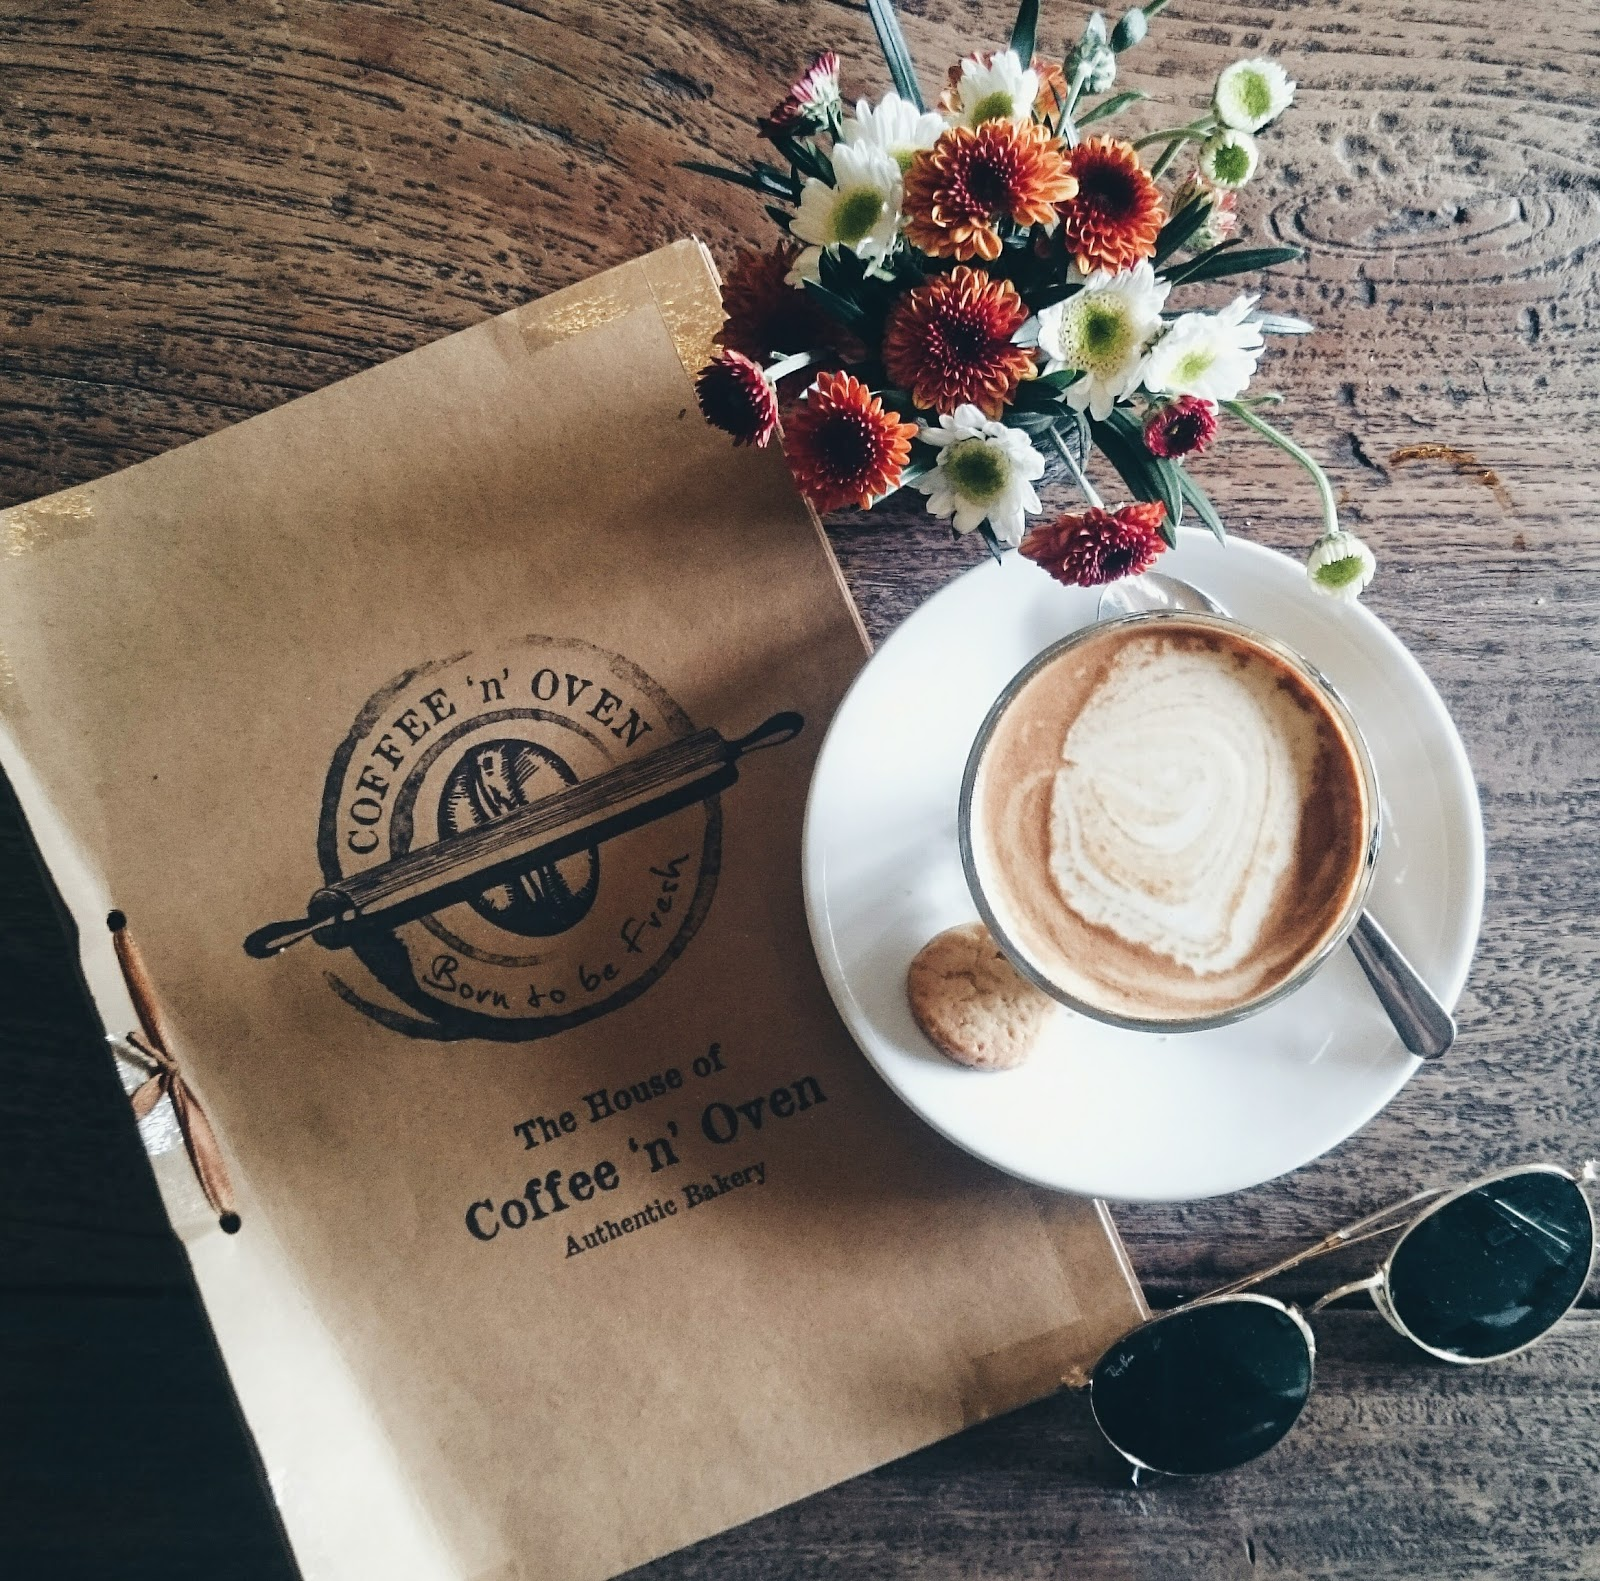 Best coffee in Canggu at Coffee n Oven